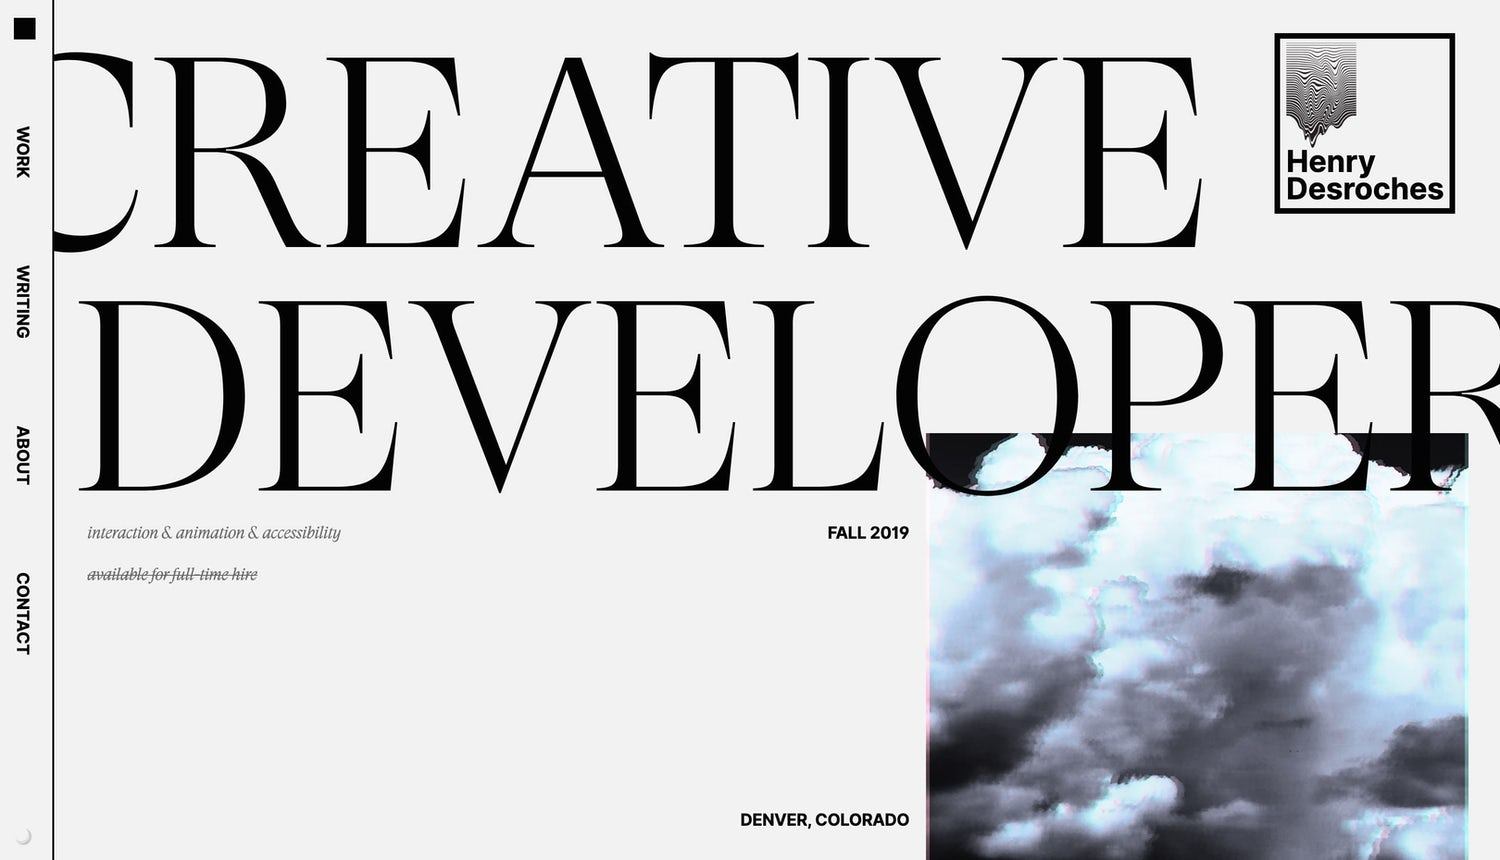 Henry's homepage with some stunning huge type